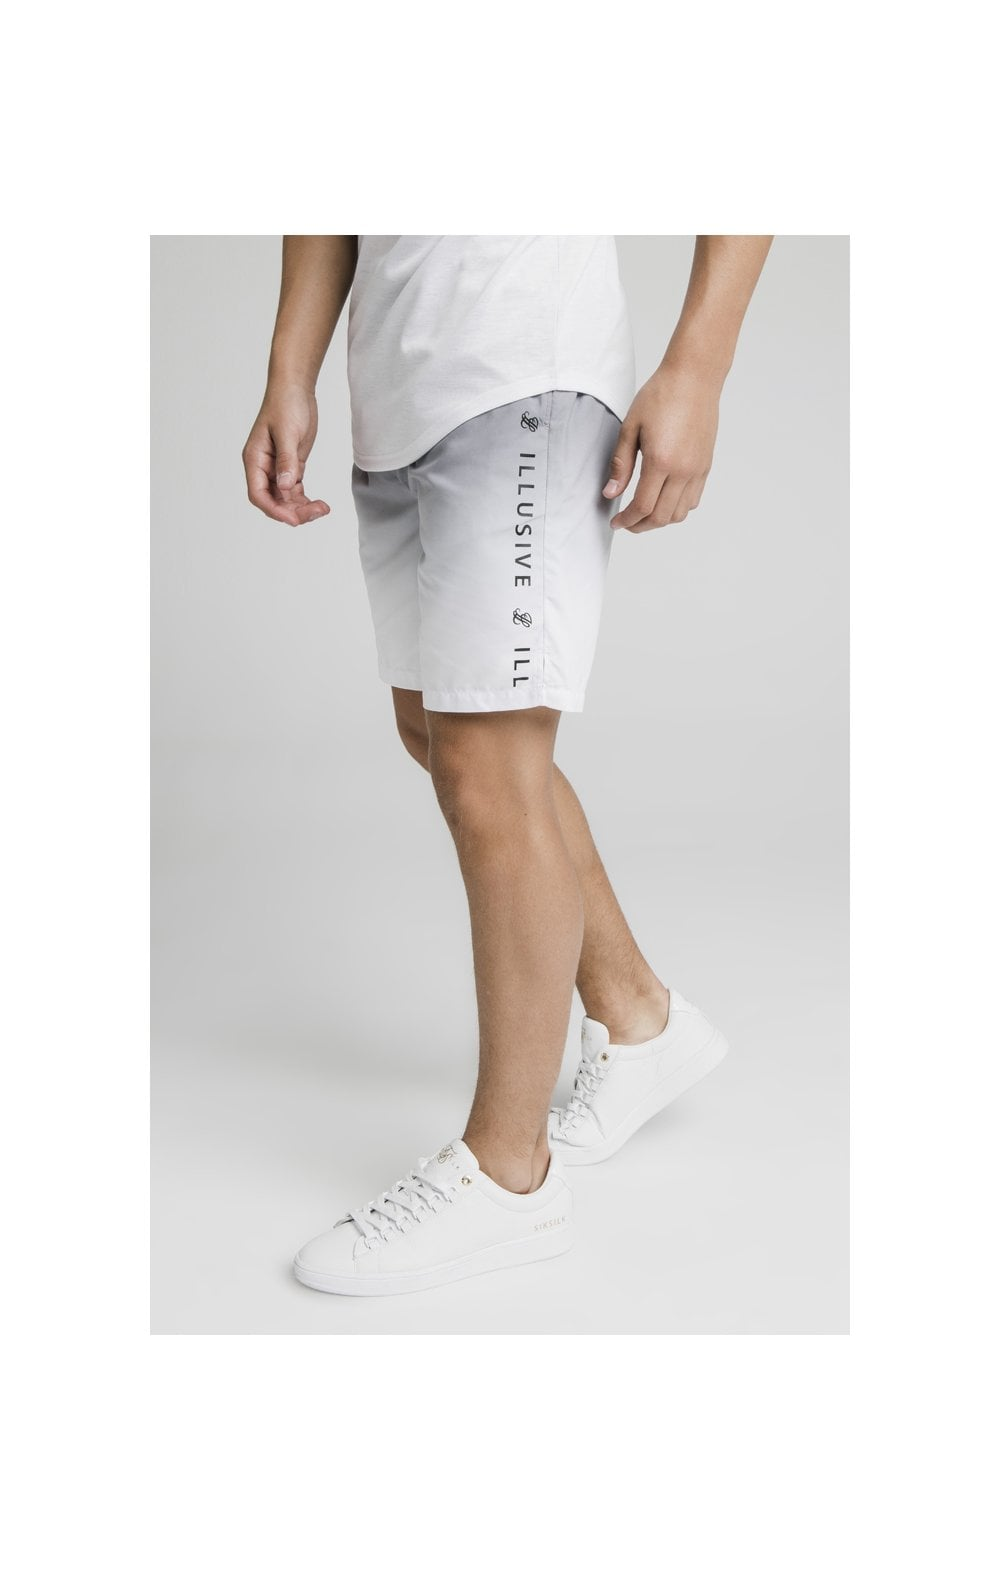 Load image into Gallery viewer, Illusive London Fade Swim Shorts - Grey & White (2)